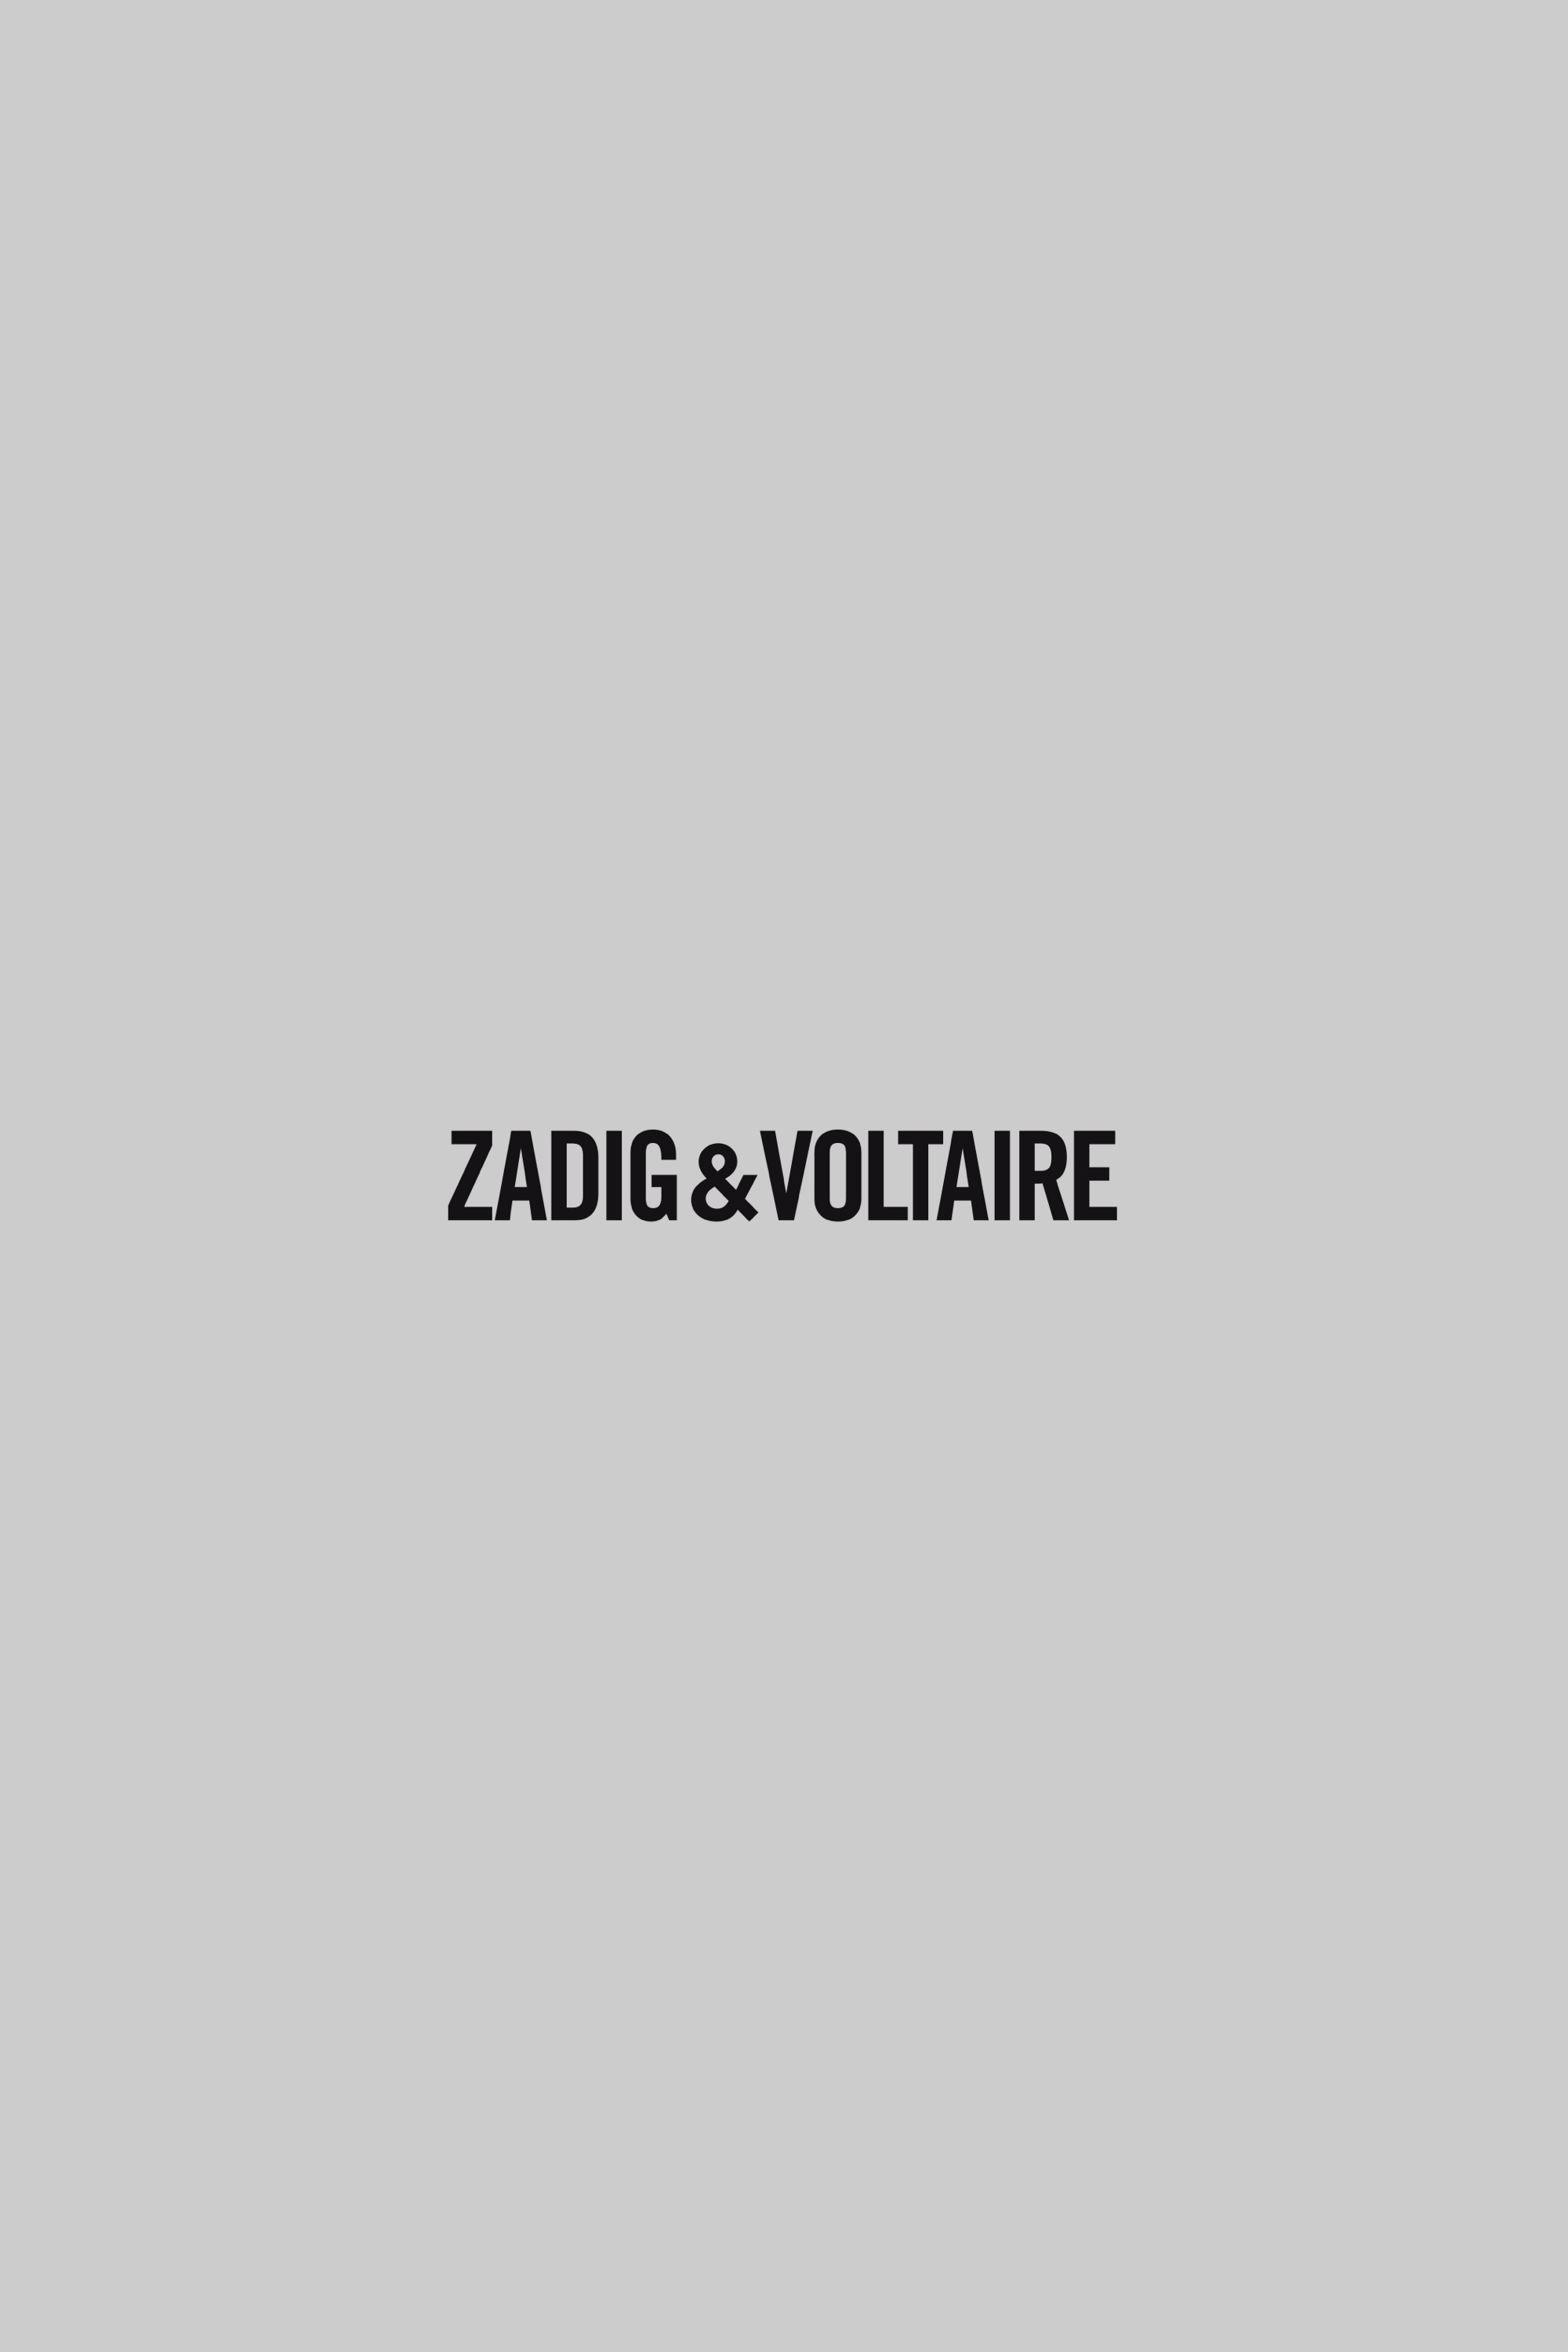 Zadig & Voltaire Zv1747 Nash Glitleo Leather Sneakers Cheap Sale Geniue Stockist Affordable Cheap Online For Sale Top Quality Comfortable lKr83V12